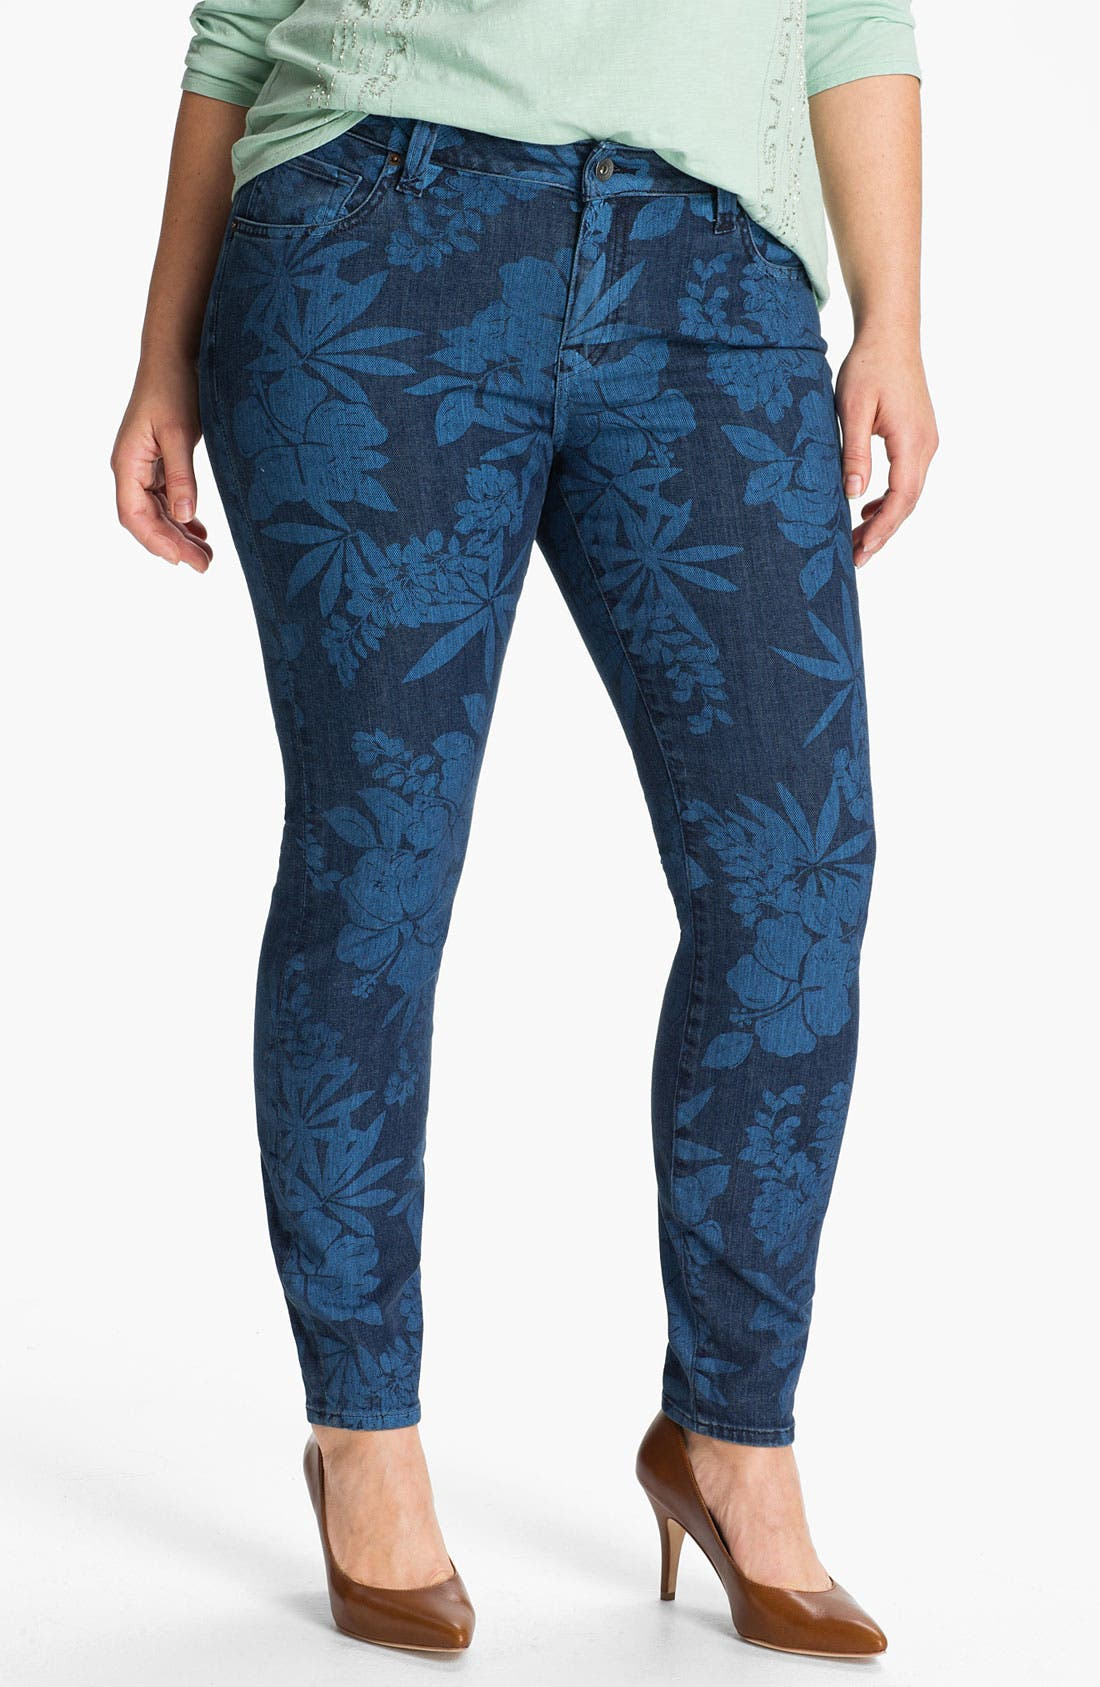 Main Image - Lucky Brand 'Ginger' Print Skinny Jeans (Plus)